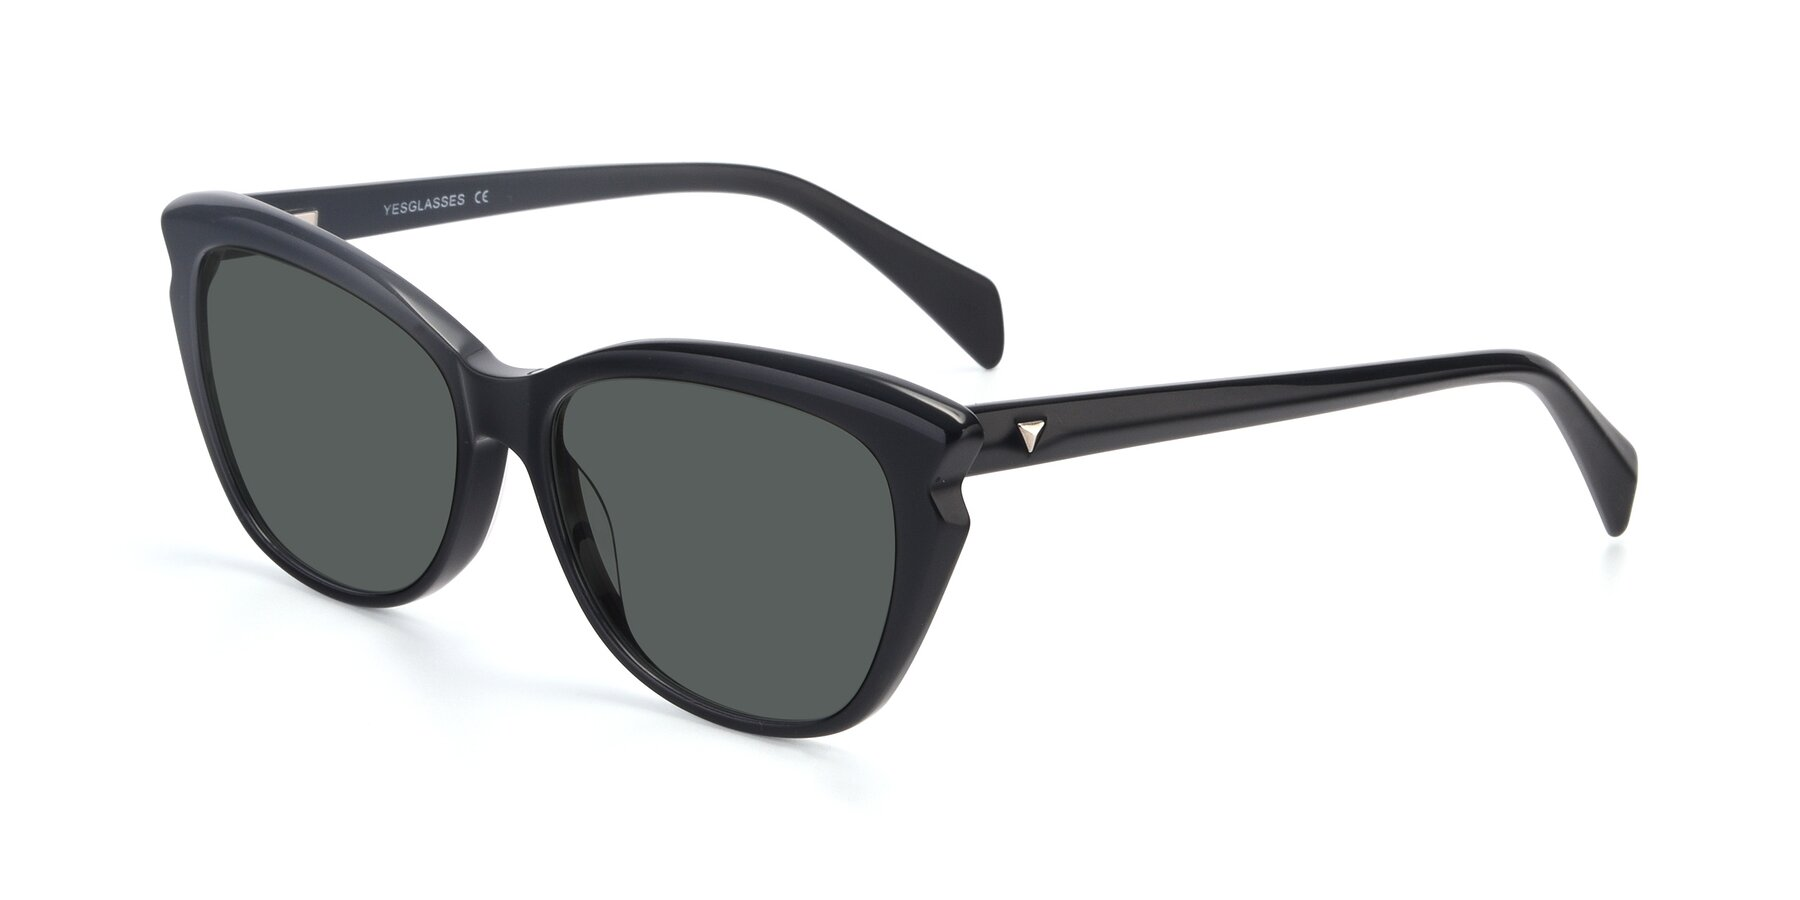 Angle of 17629 in Black with Gray Polarized Lenses